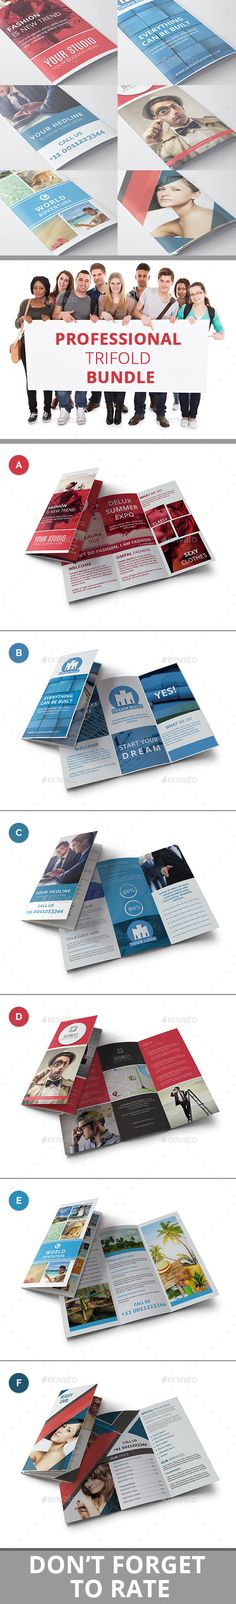 Professional Trifold Brochure Bundle - Brochure Template PSD. Download here: http://graphicriver.net/item/professional-trifold-brochure-bundle/12257603?s_rank=1709&ref=yinkira